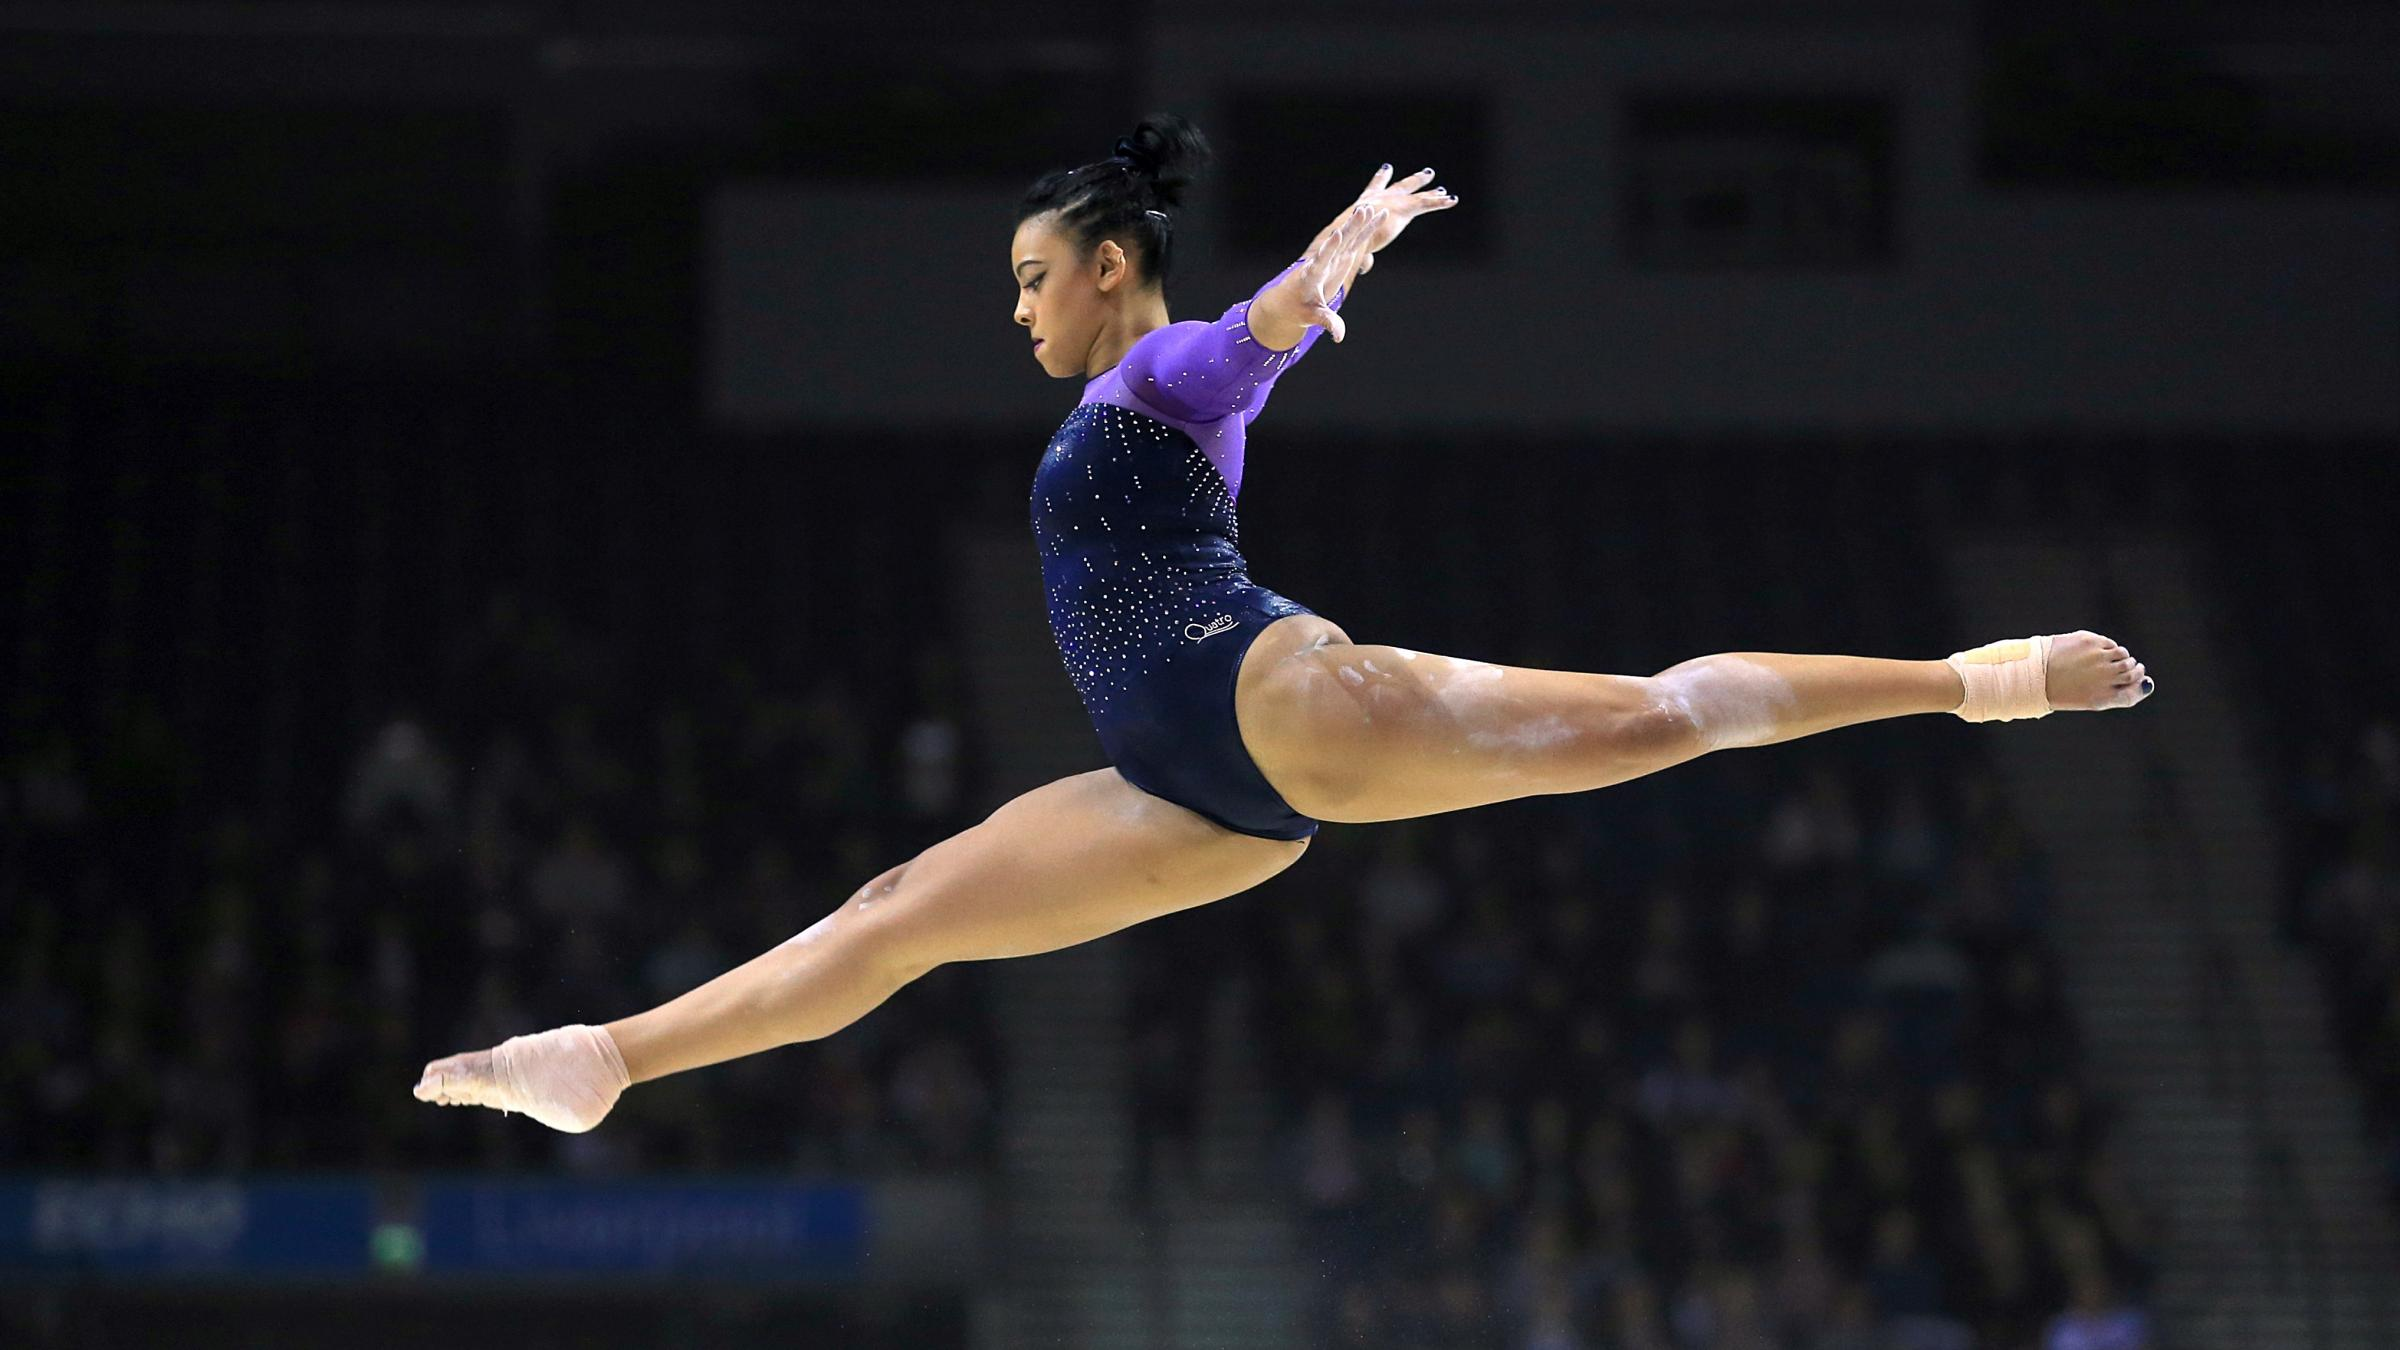 Britain's Ellie Downie qualifies for all-around and all apparatus finals in Cluj